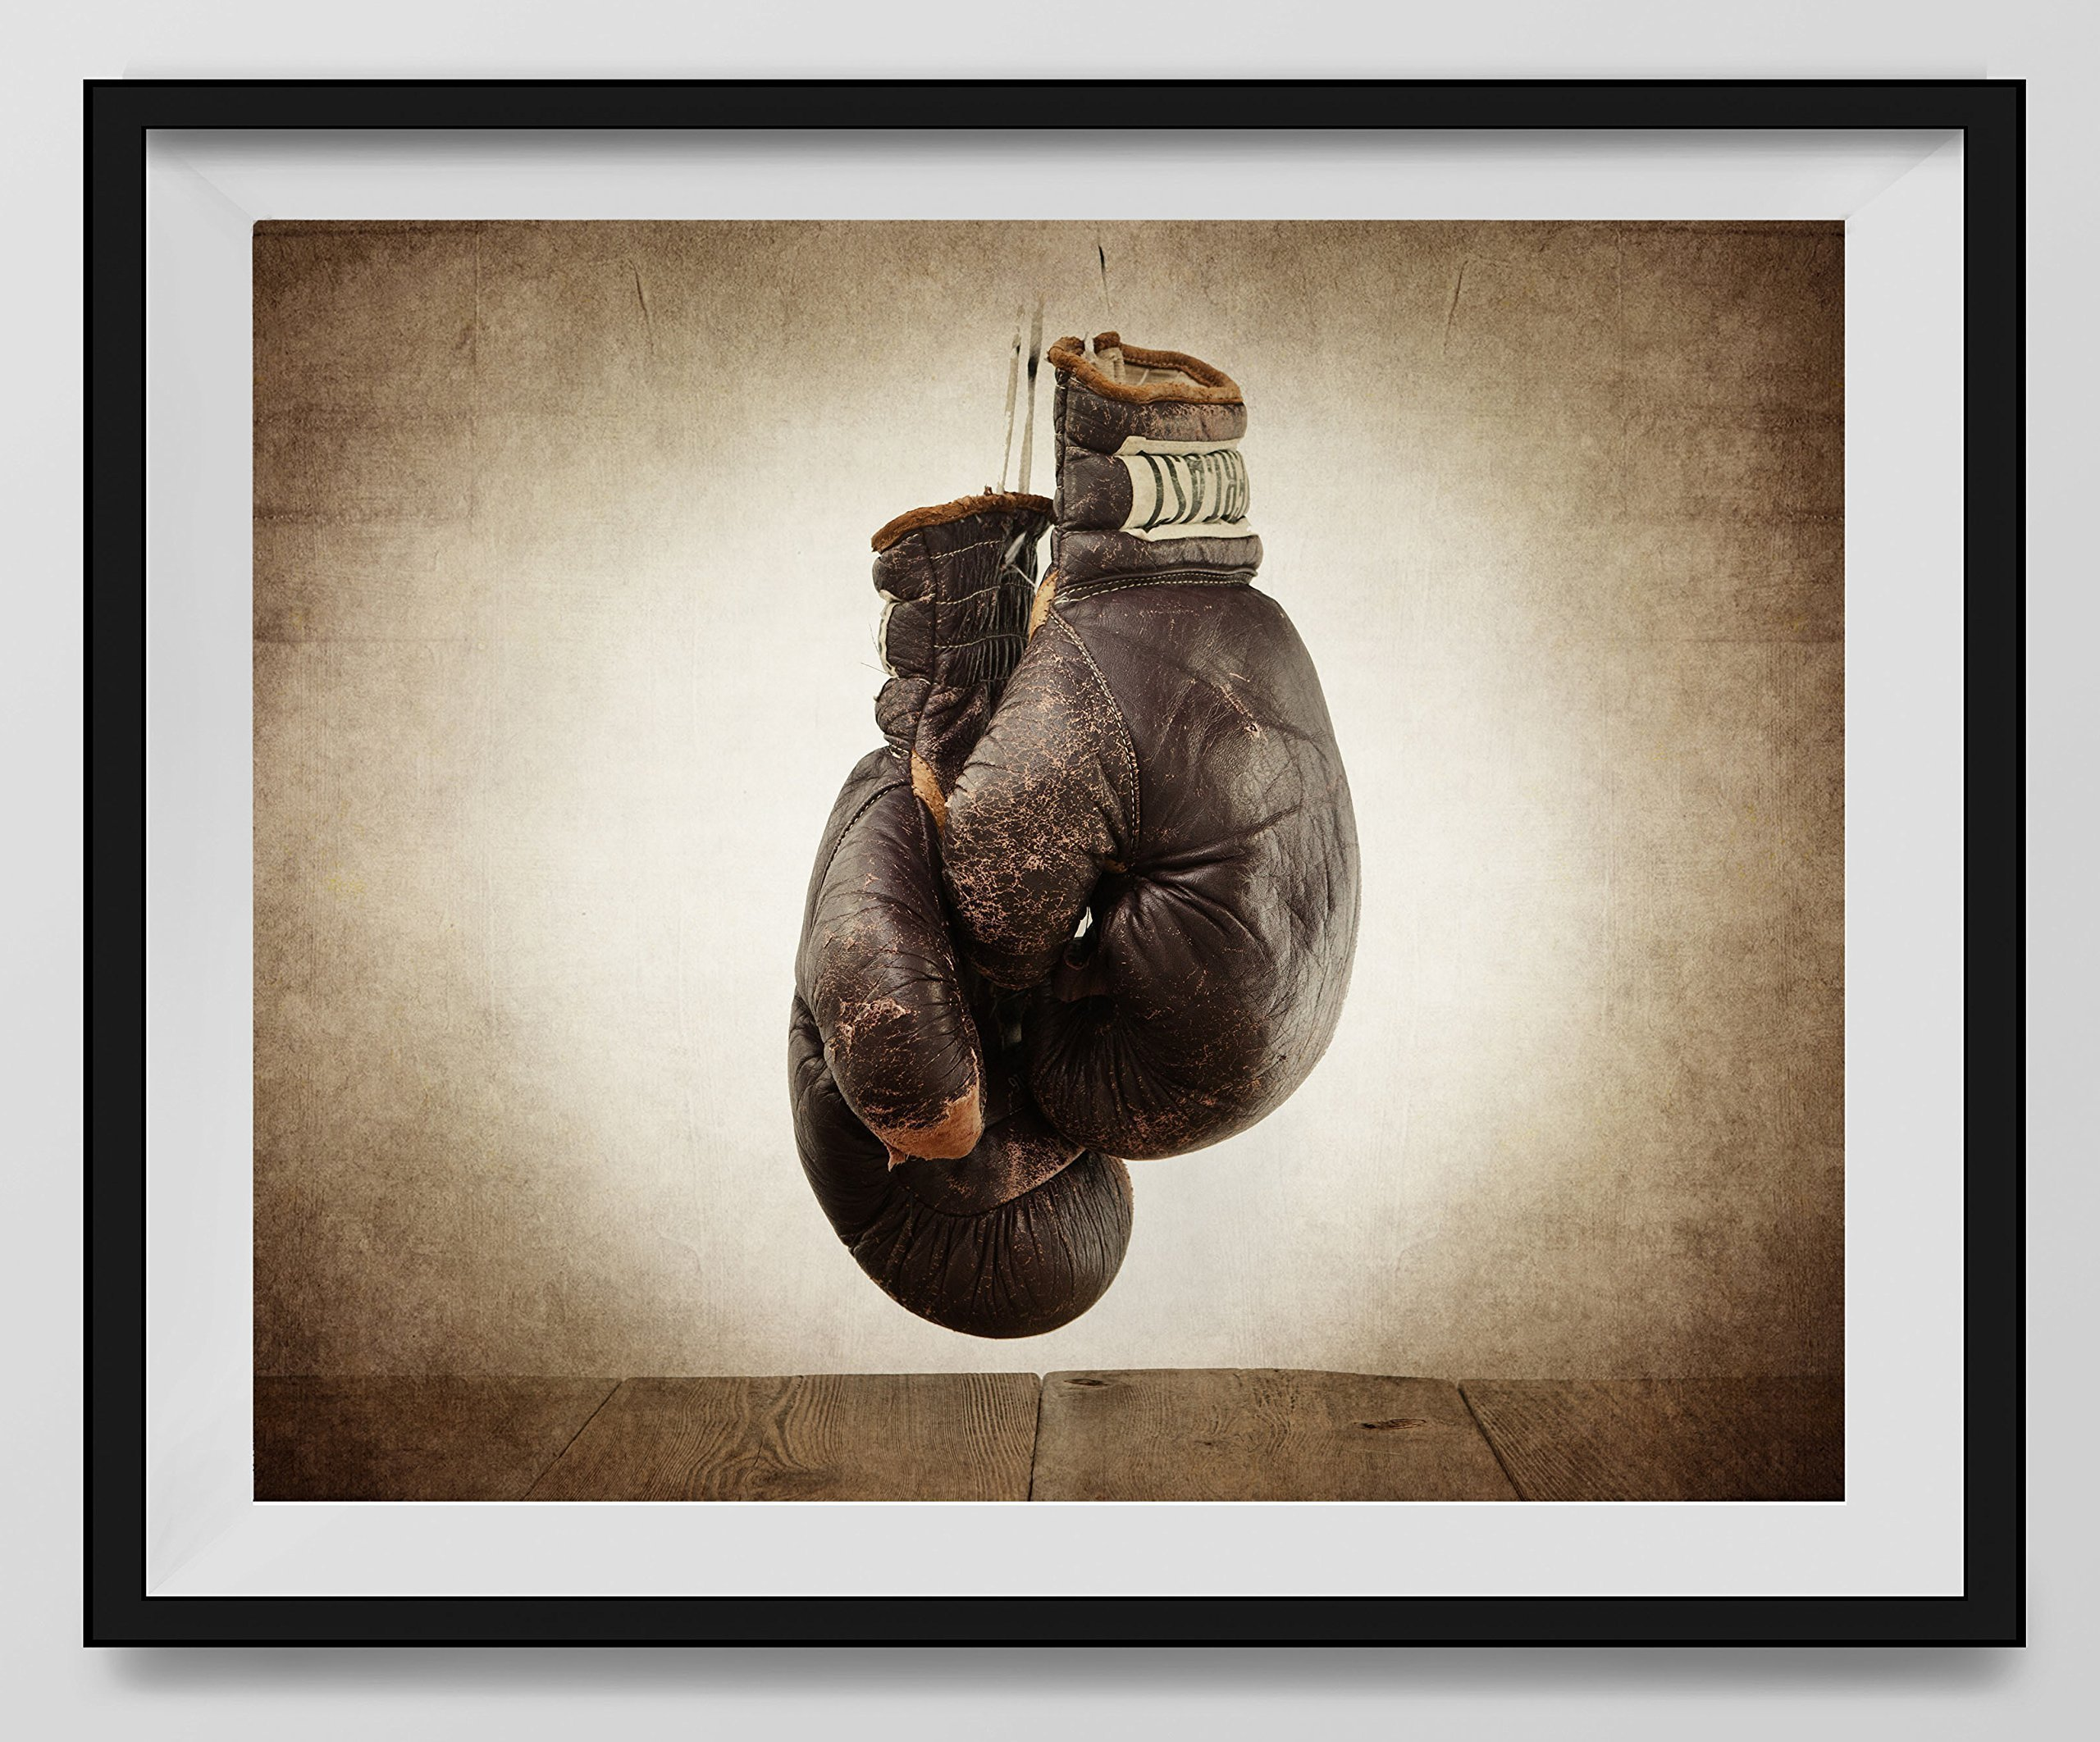 Vintage Boxing Gloves on Vintage Background Fine Art Photography Print, Sports Decor, Boxing decor, Man Cave art, Vintage Sports Nursery Art,Boxing Gloves, Nursery decor, Kids Room Wall Art.